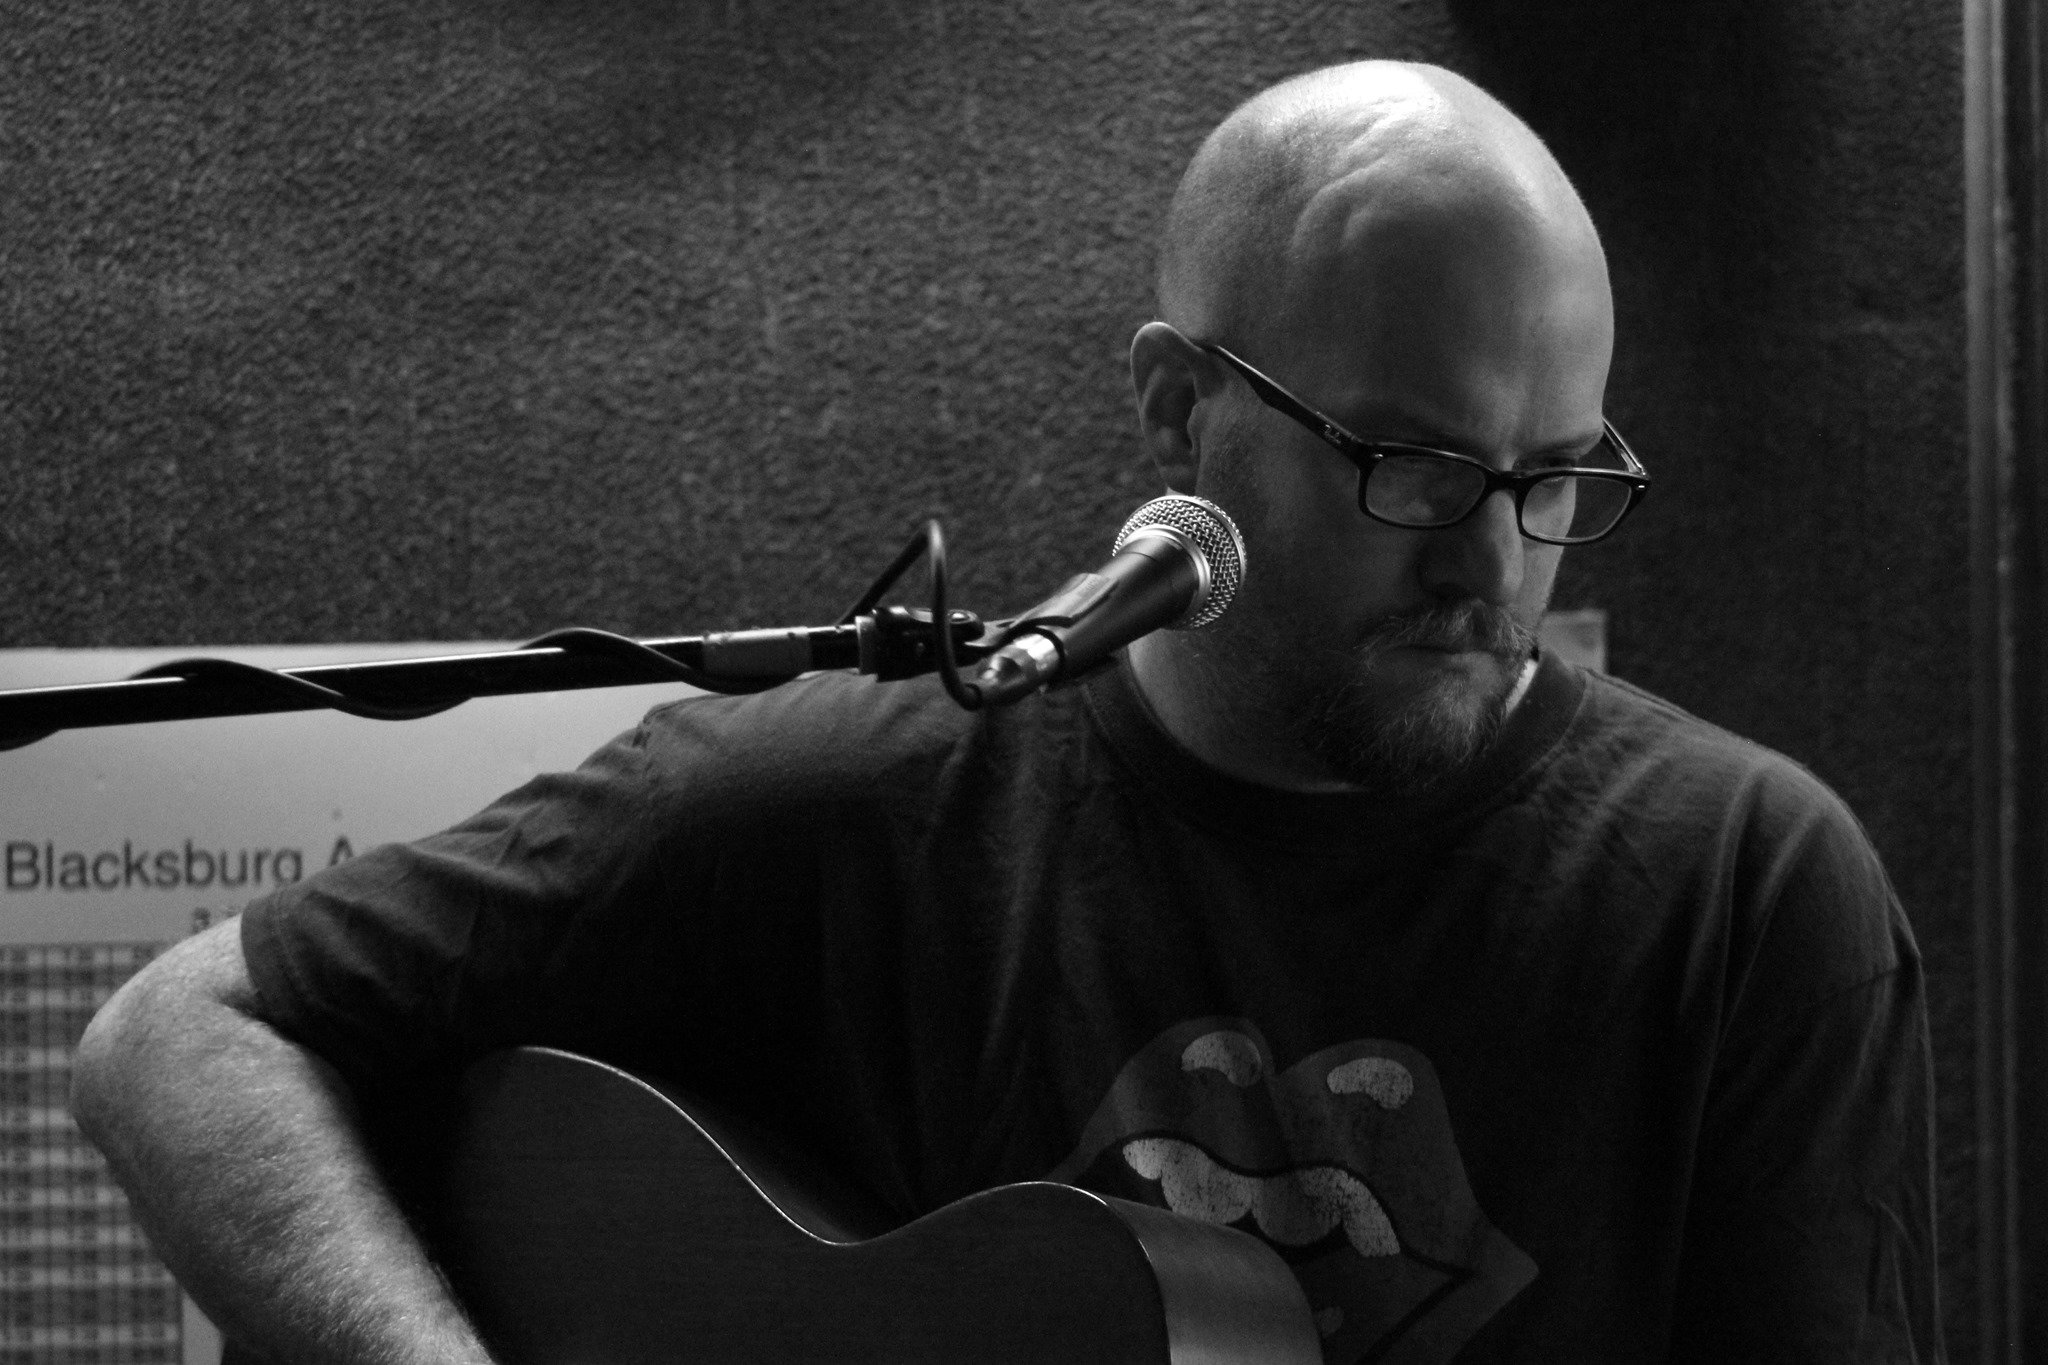 Singer/songwriter currently residing in Blacksburg, VA, originally from Houston, TX. Americana, Blues, Folk, and Rock; originals and extensive covers.